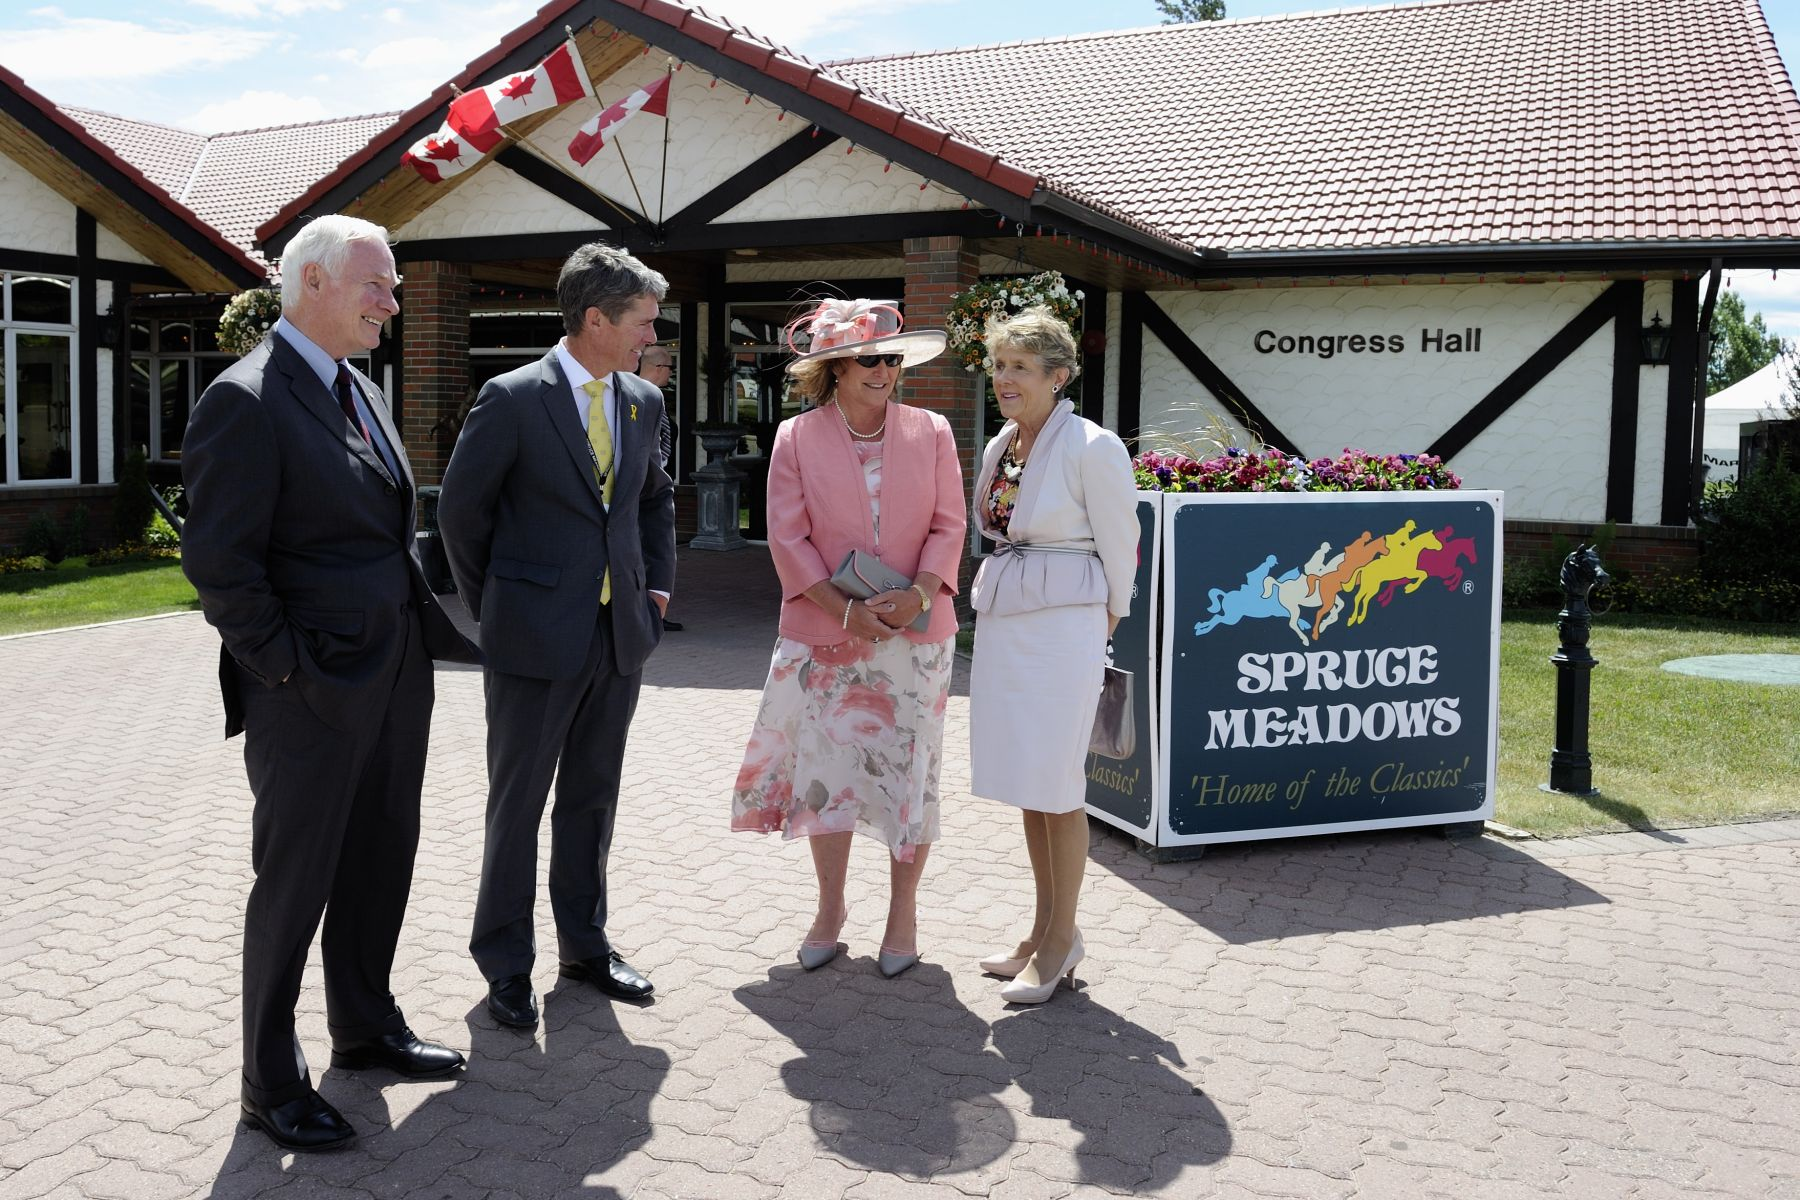 Upon their arrival at Spruce Meadows, Their Excellencies the Right Honourable David Johnston, Governor General of Canada, and Mrs. Sharon Johnston were greeted by Mrs. Linda Heathcott, Spruce Meadows President, and her husband Mr. Tom Heathcott.